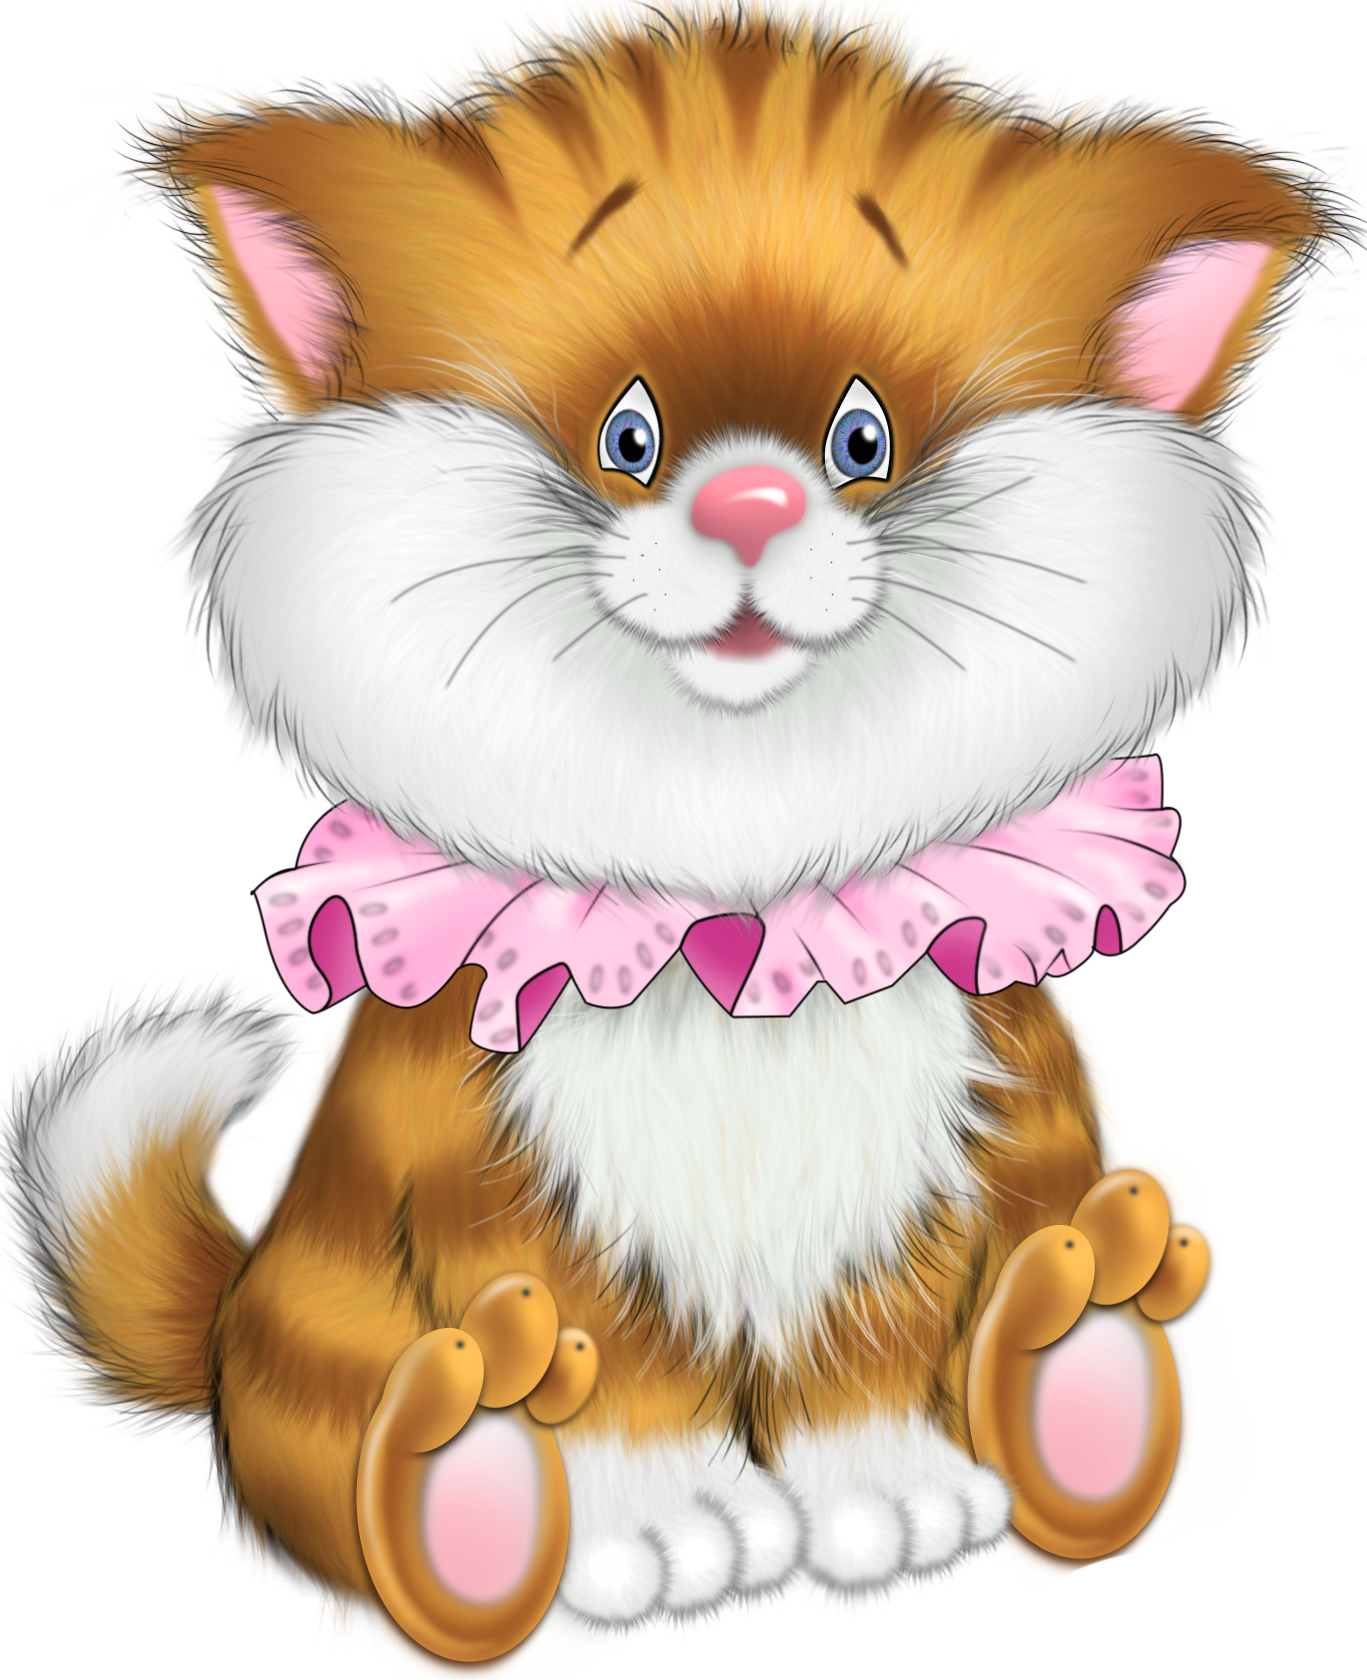 Tiger Kitten Cartoon Free Clipart.